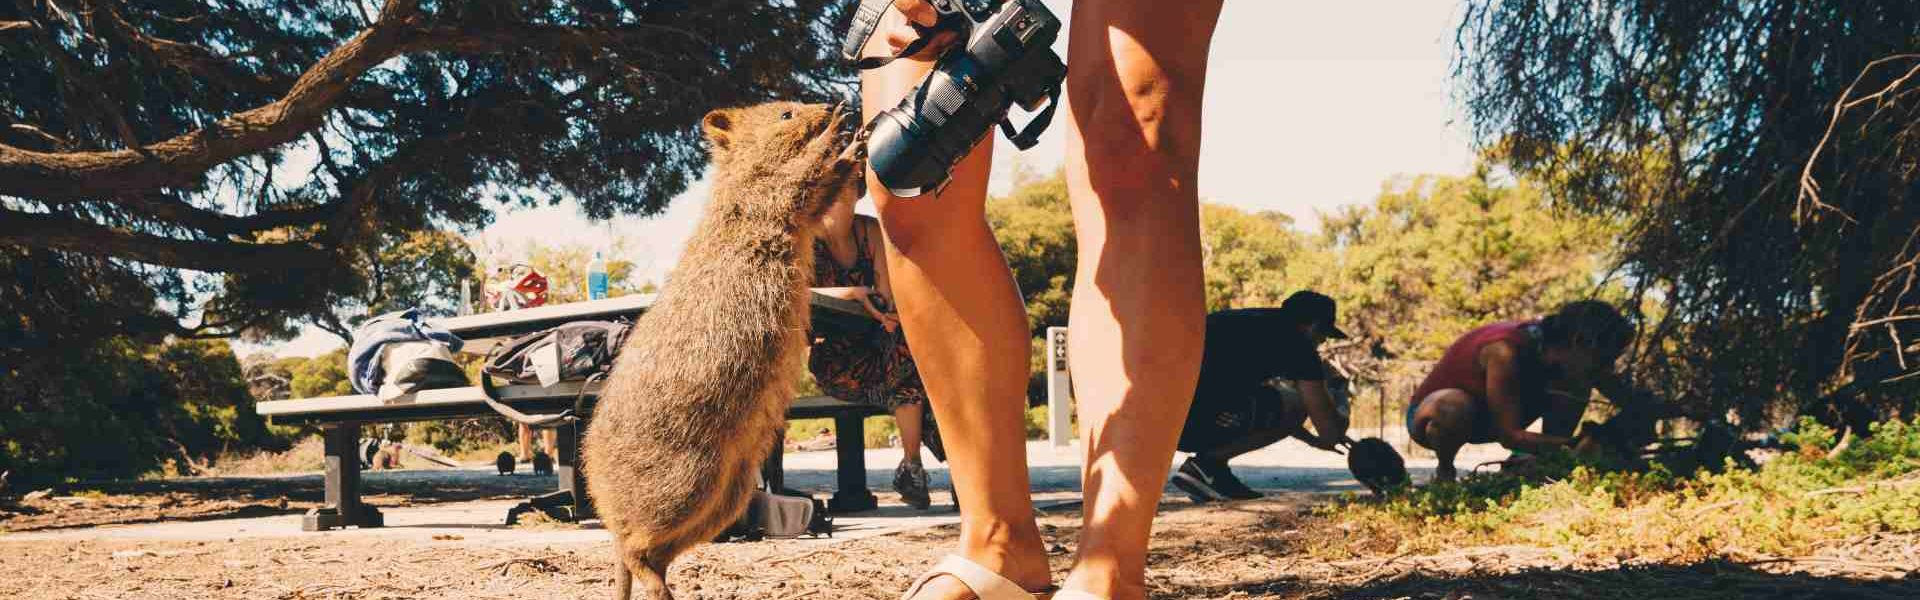 Backpackers playing with Quokkas